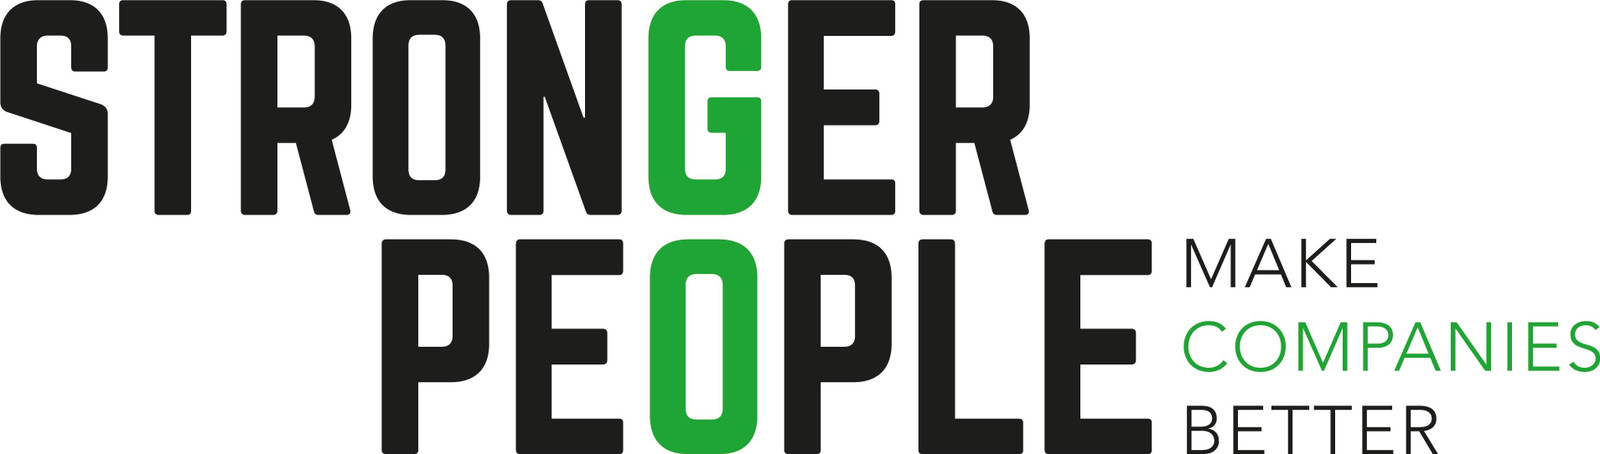 STRONGERPEOPLE AS